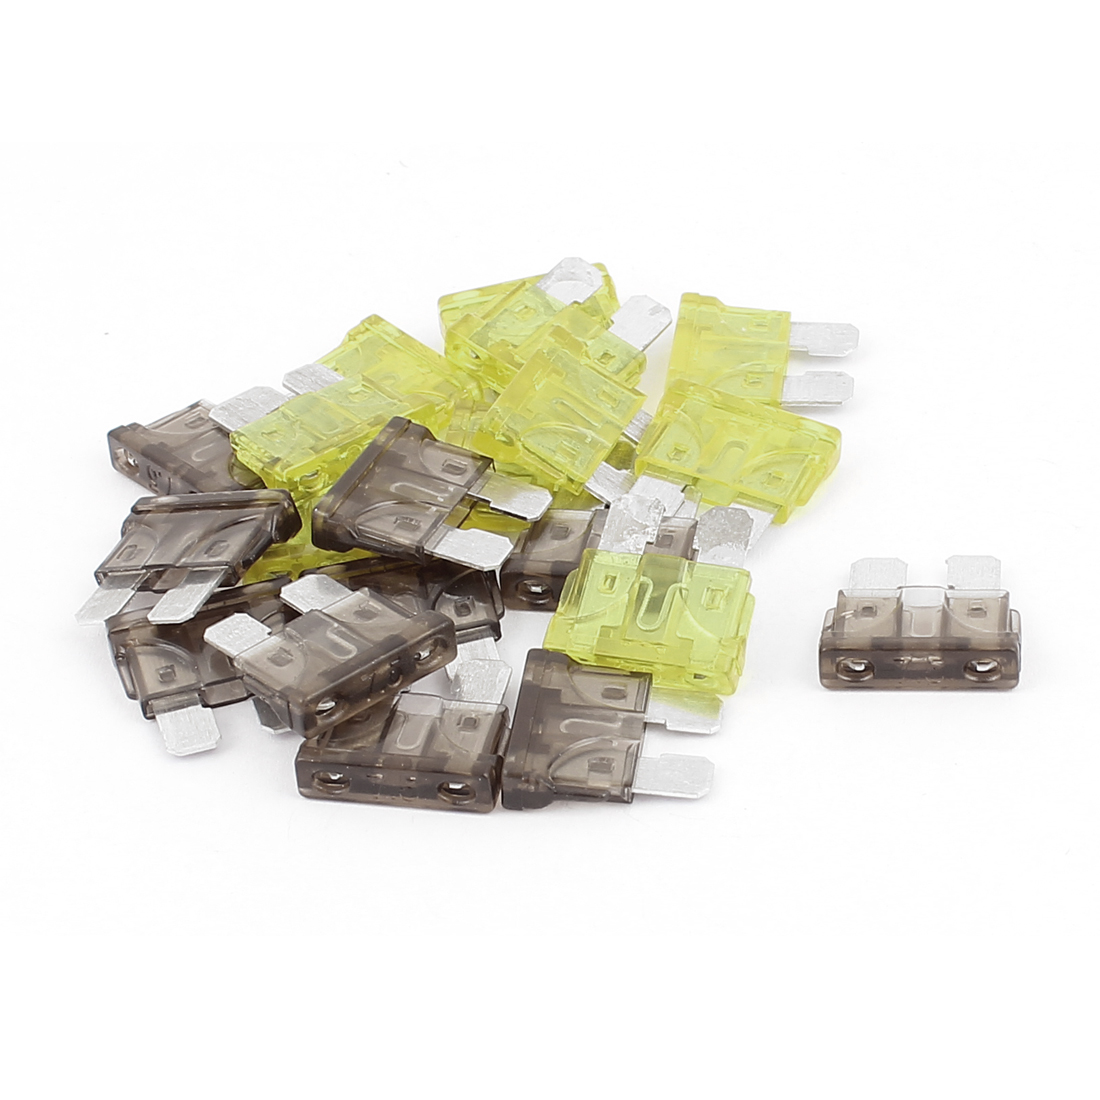 20pcs Yellow Green 7.5A 20A Plastic Shell Mini Blade Fuse for Car Caravan Vehicle Motorbike SUV